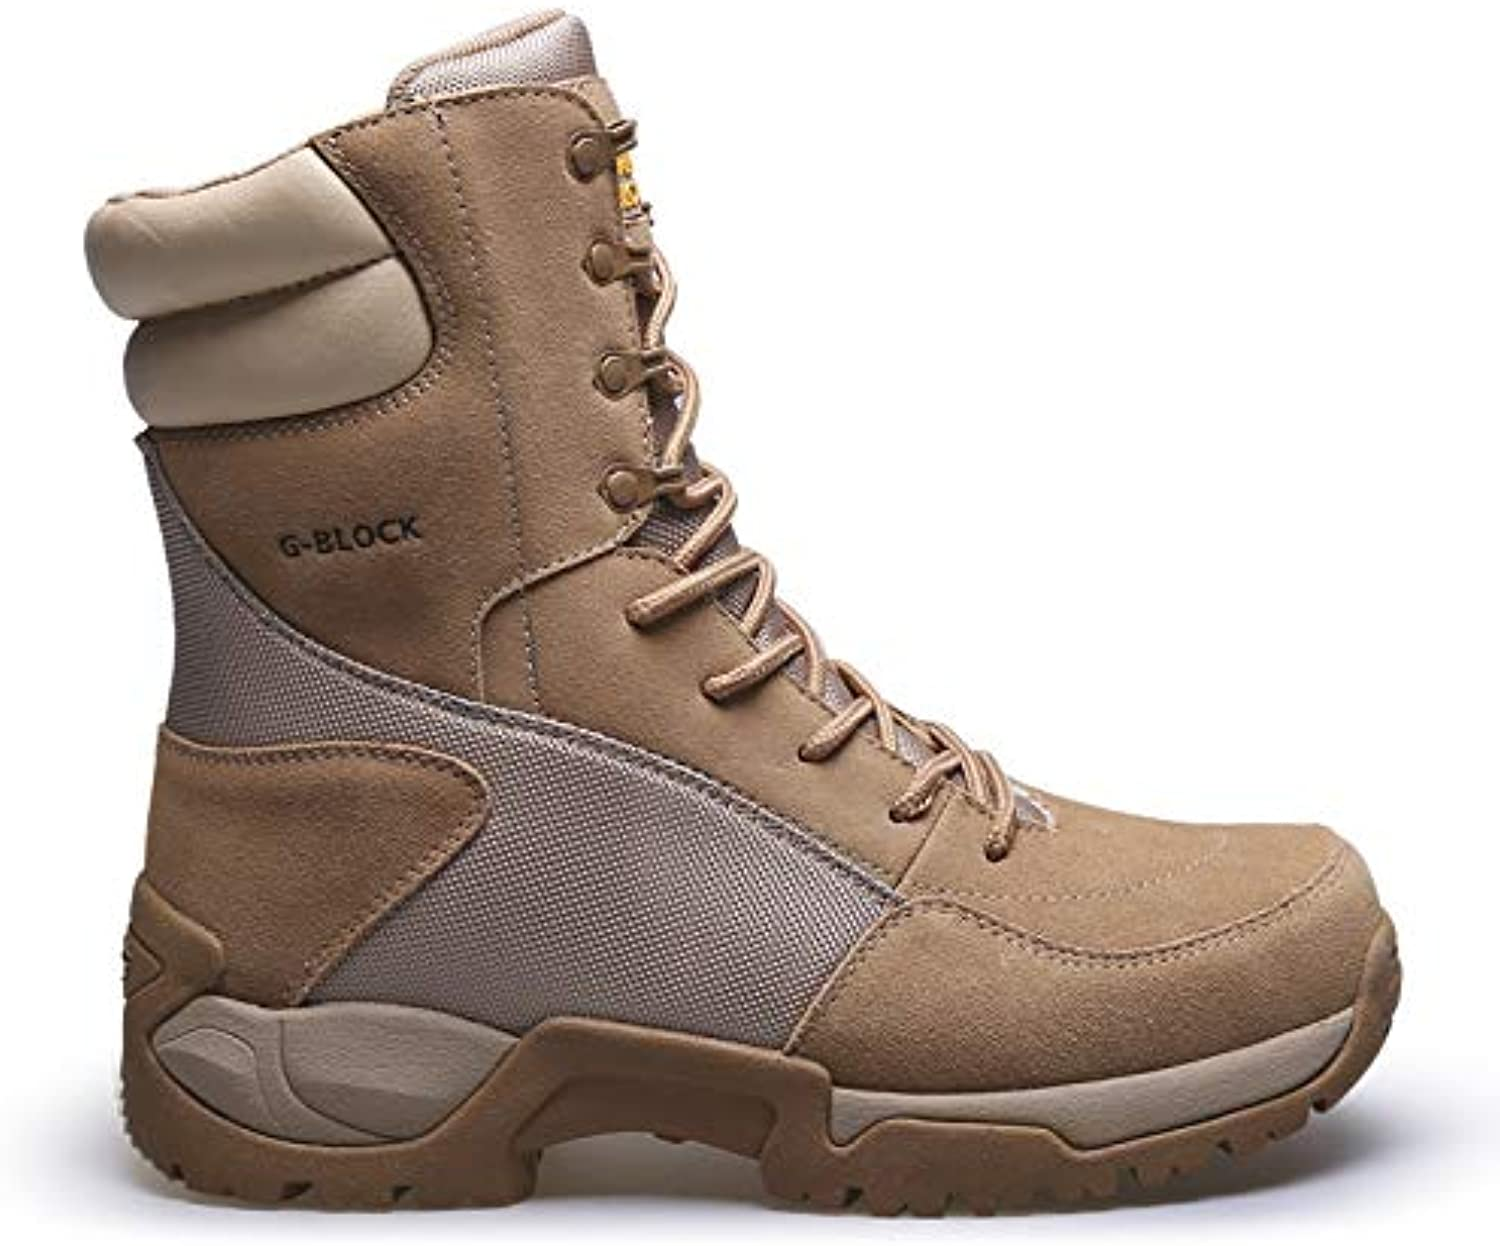 HCBYJ shoes Desert combat boots PU military boots camp tactical boots desert combat boots male commando